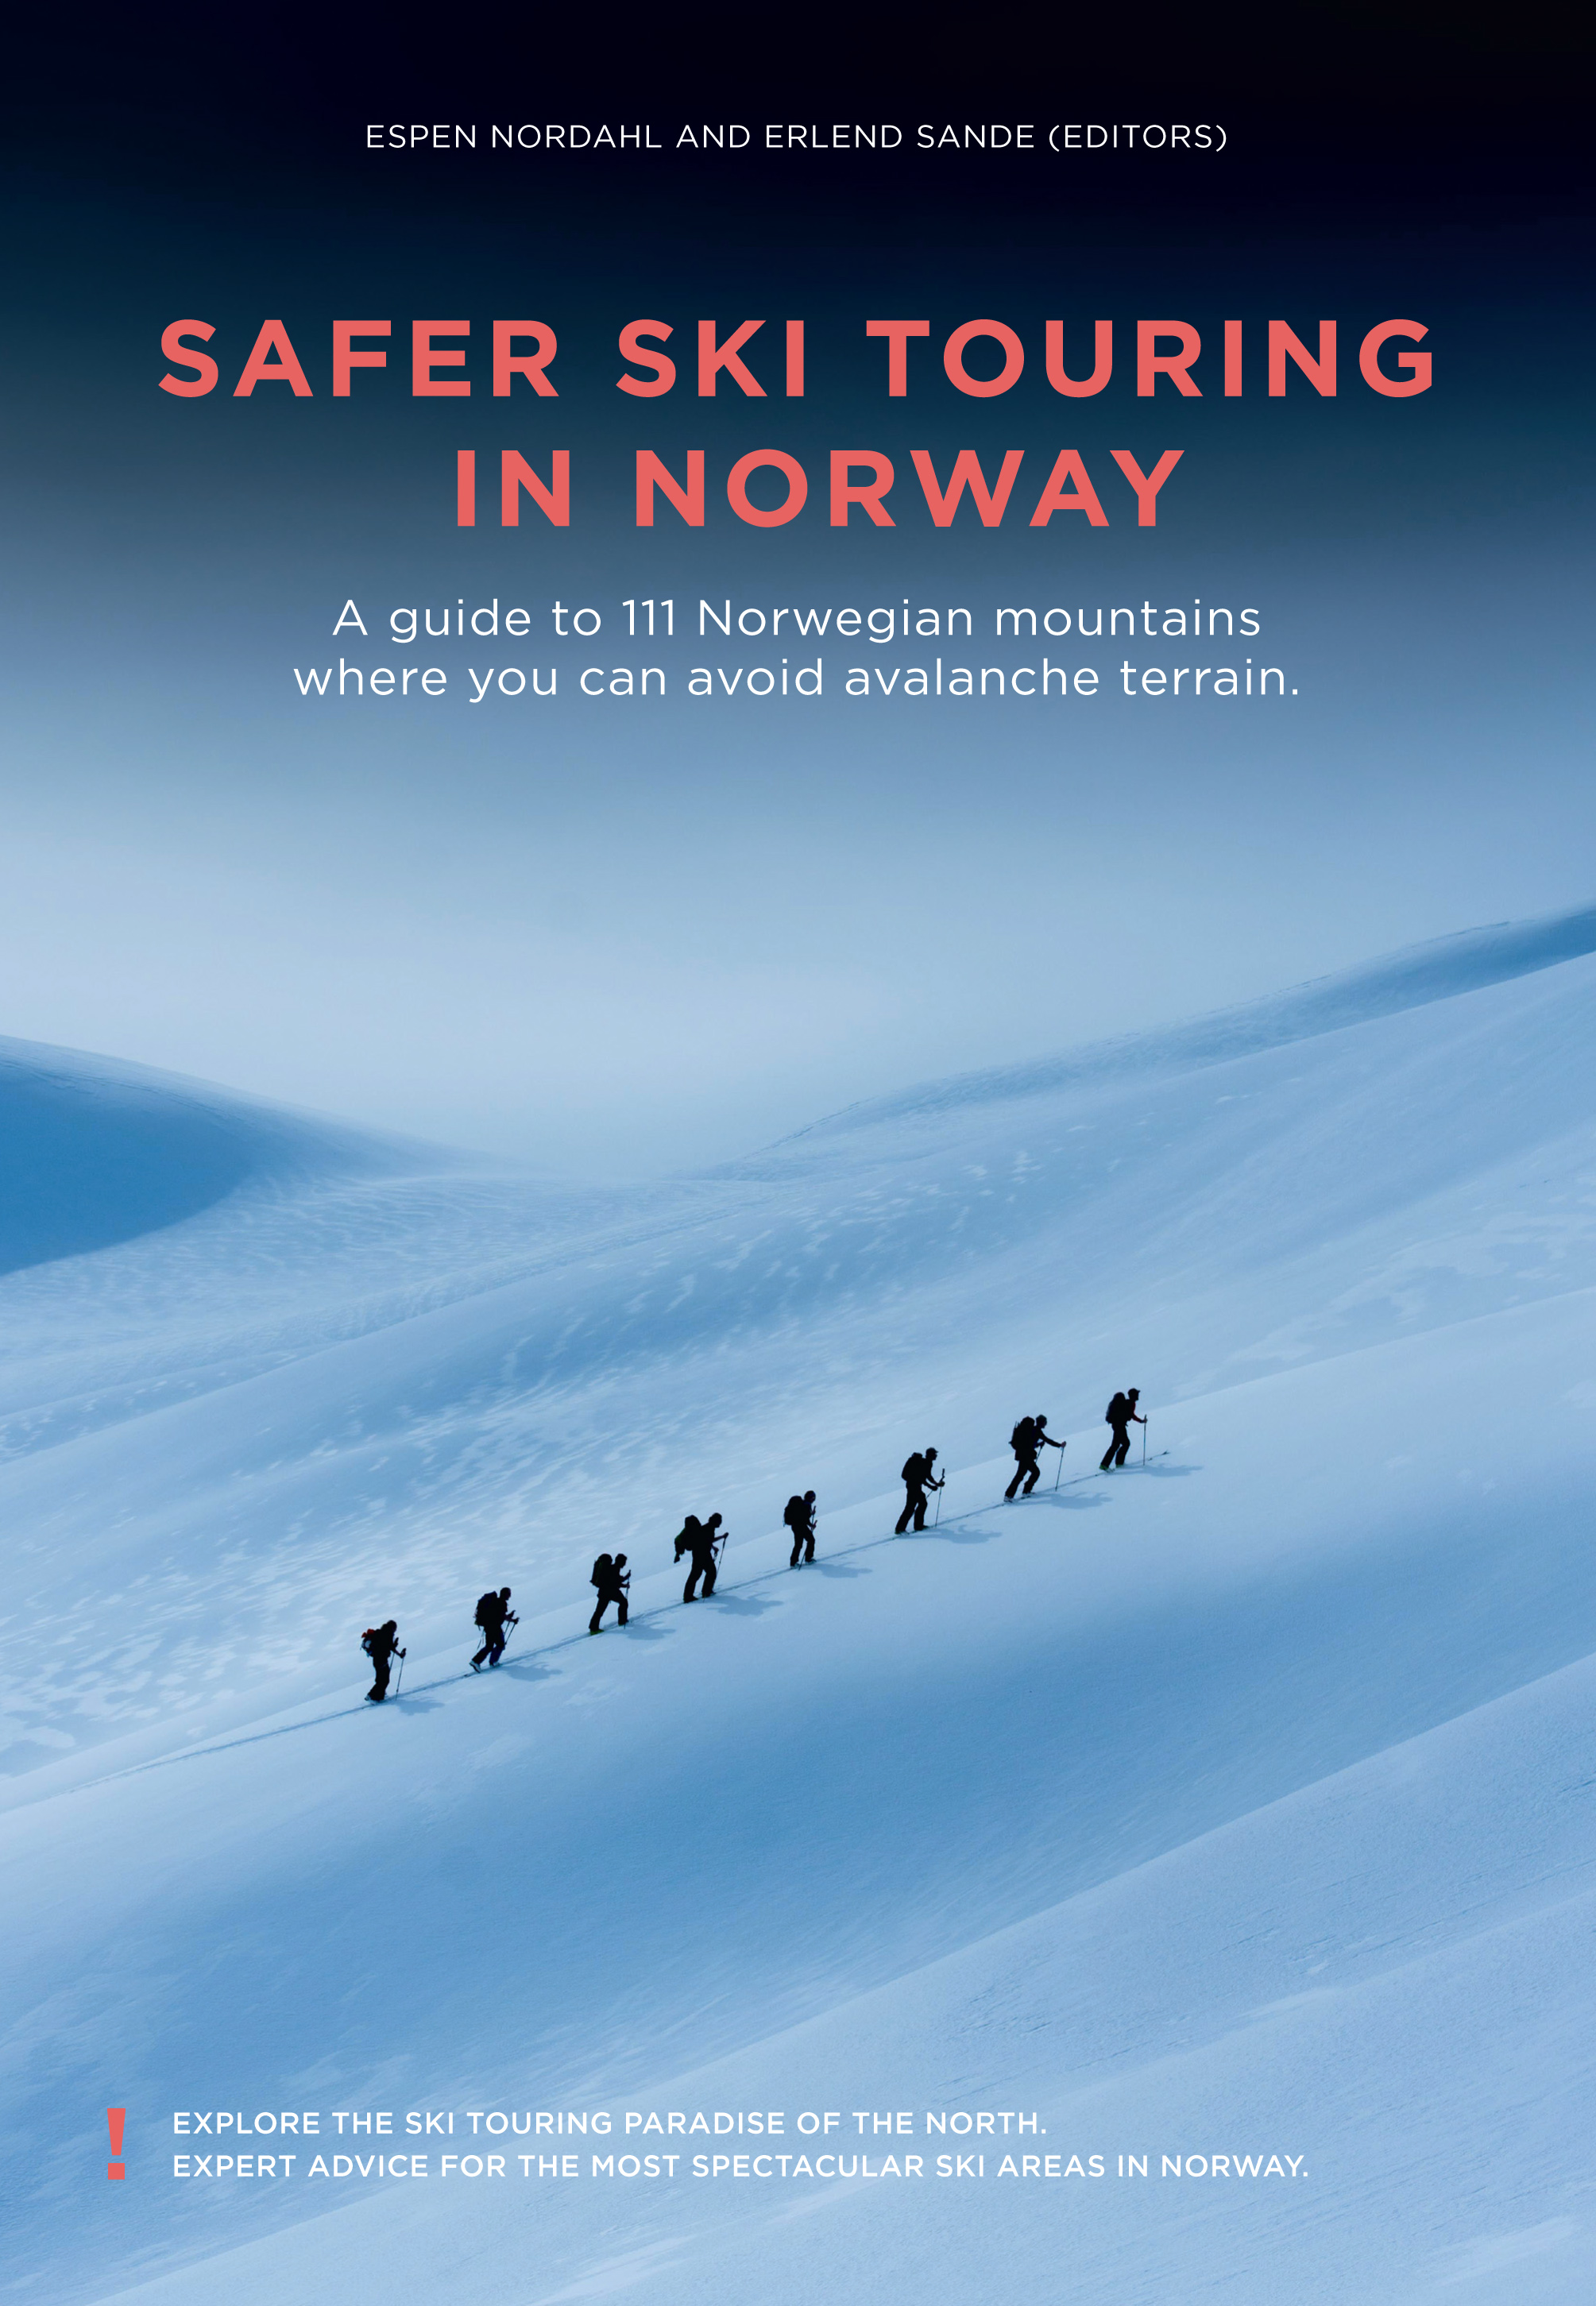 Safer Ski touring in Norway